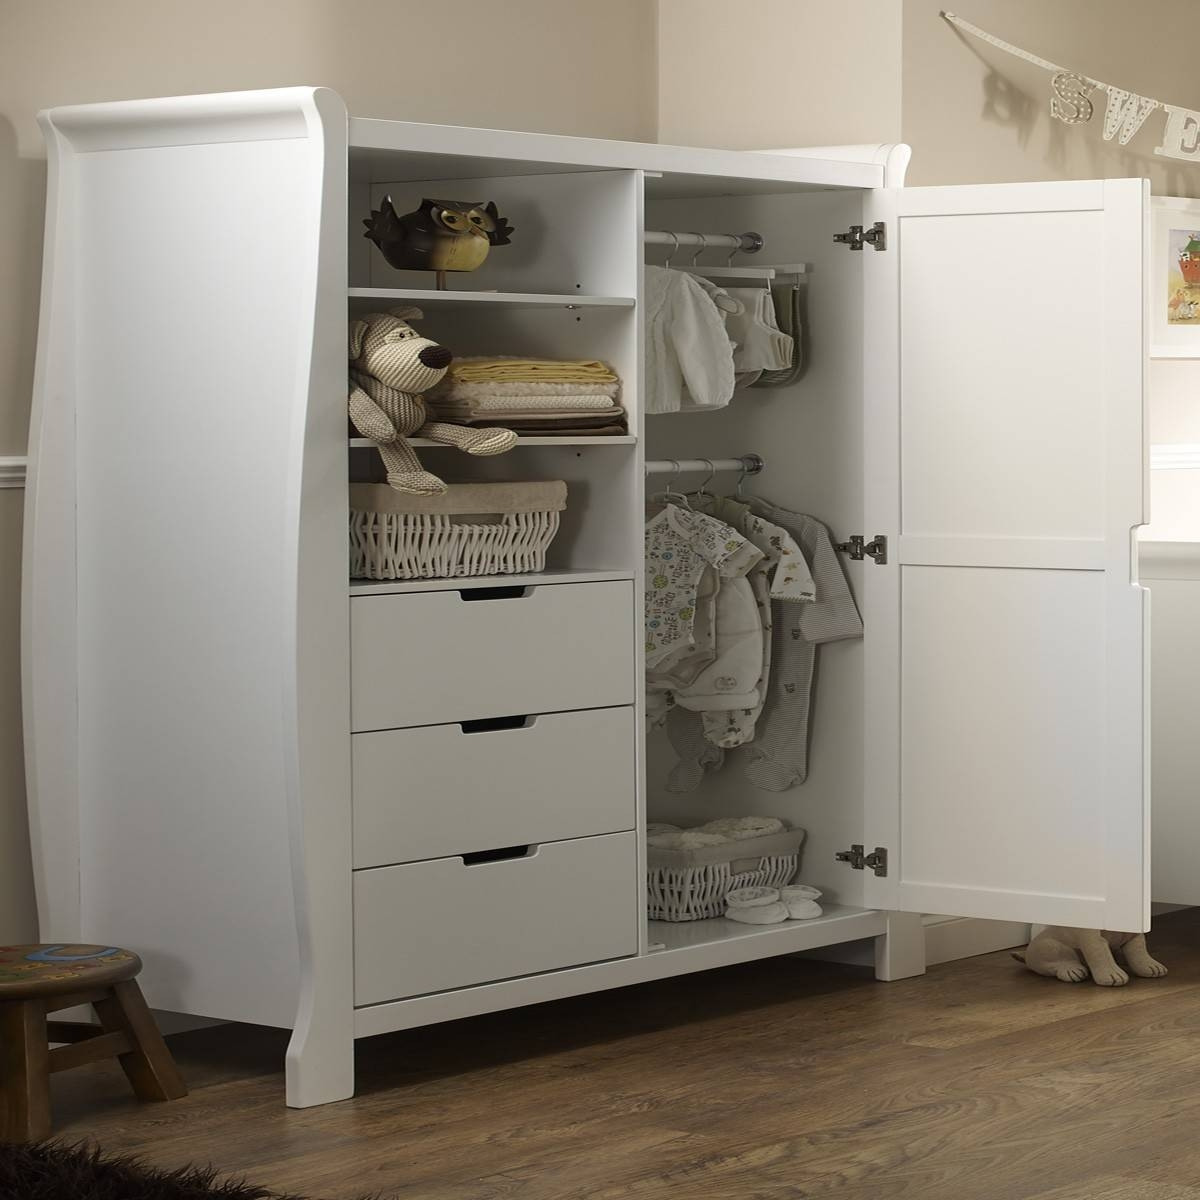 Obaby Lincoln Wardrobe – White – Wardrobes – Furniture – Sleep Within Cheap Baby Wardrobes (View 27 of 30)